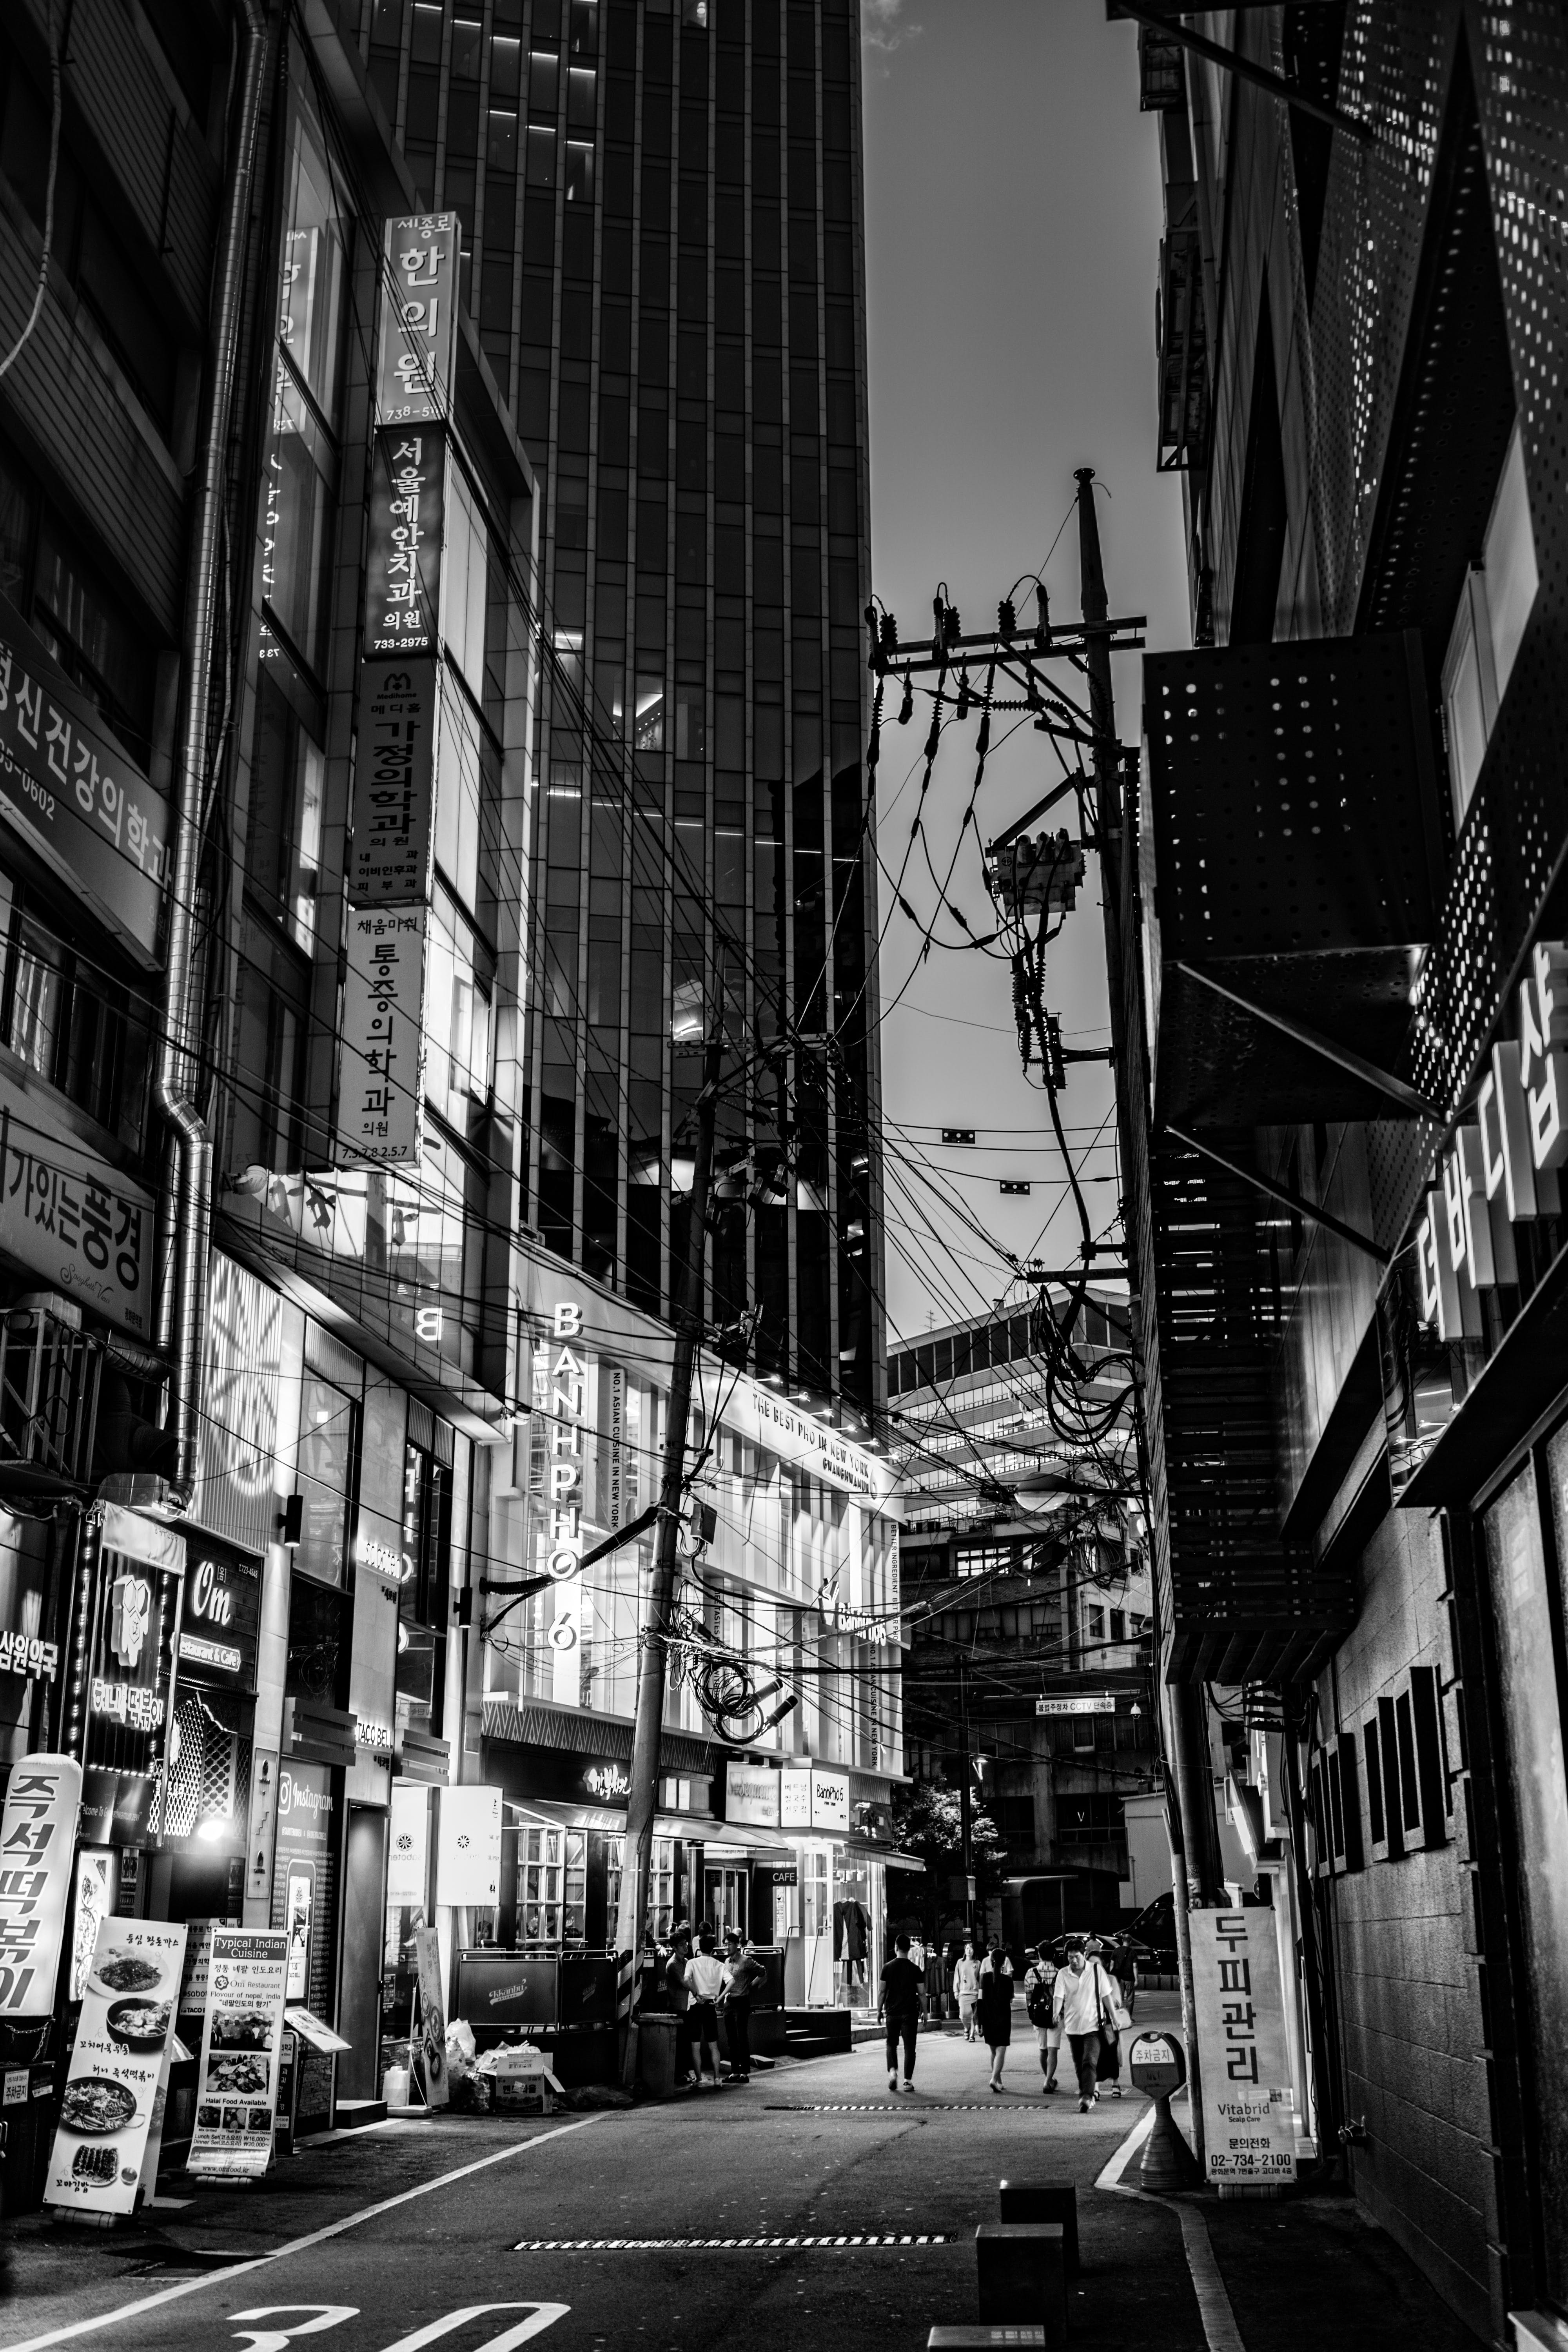 Grayscale Photo of Buildings and Roads at Night